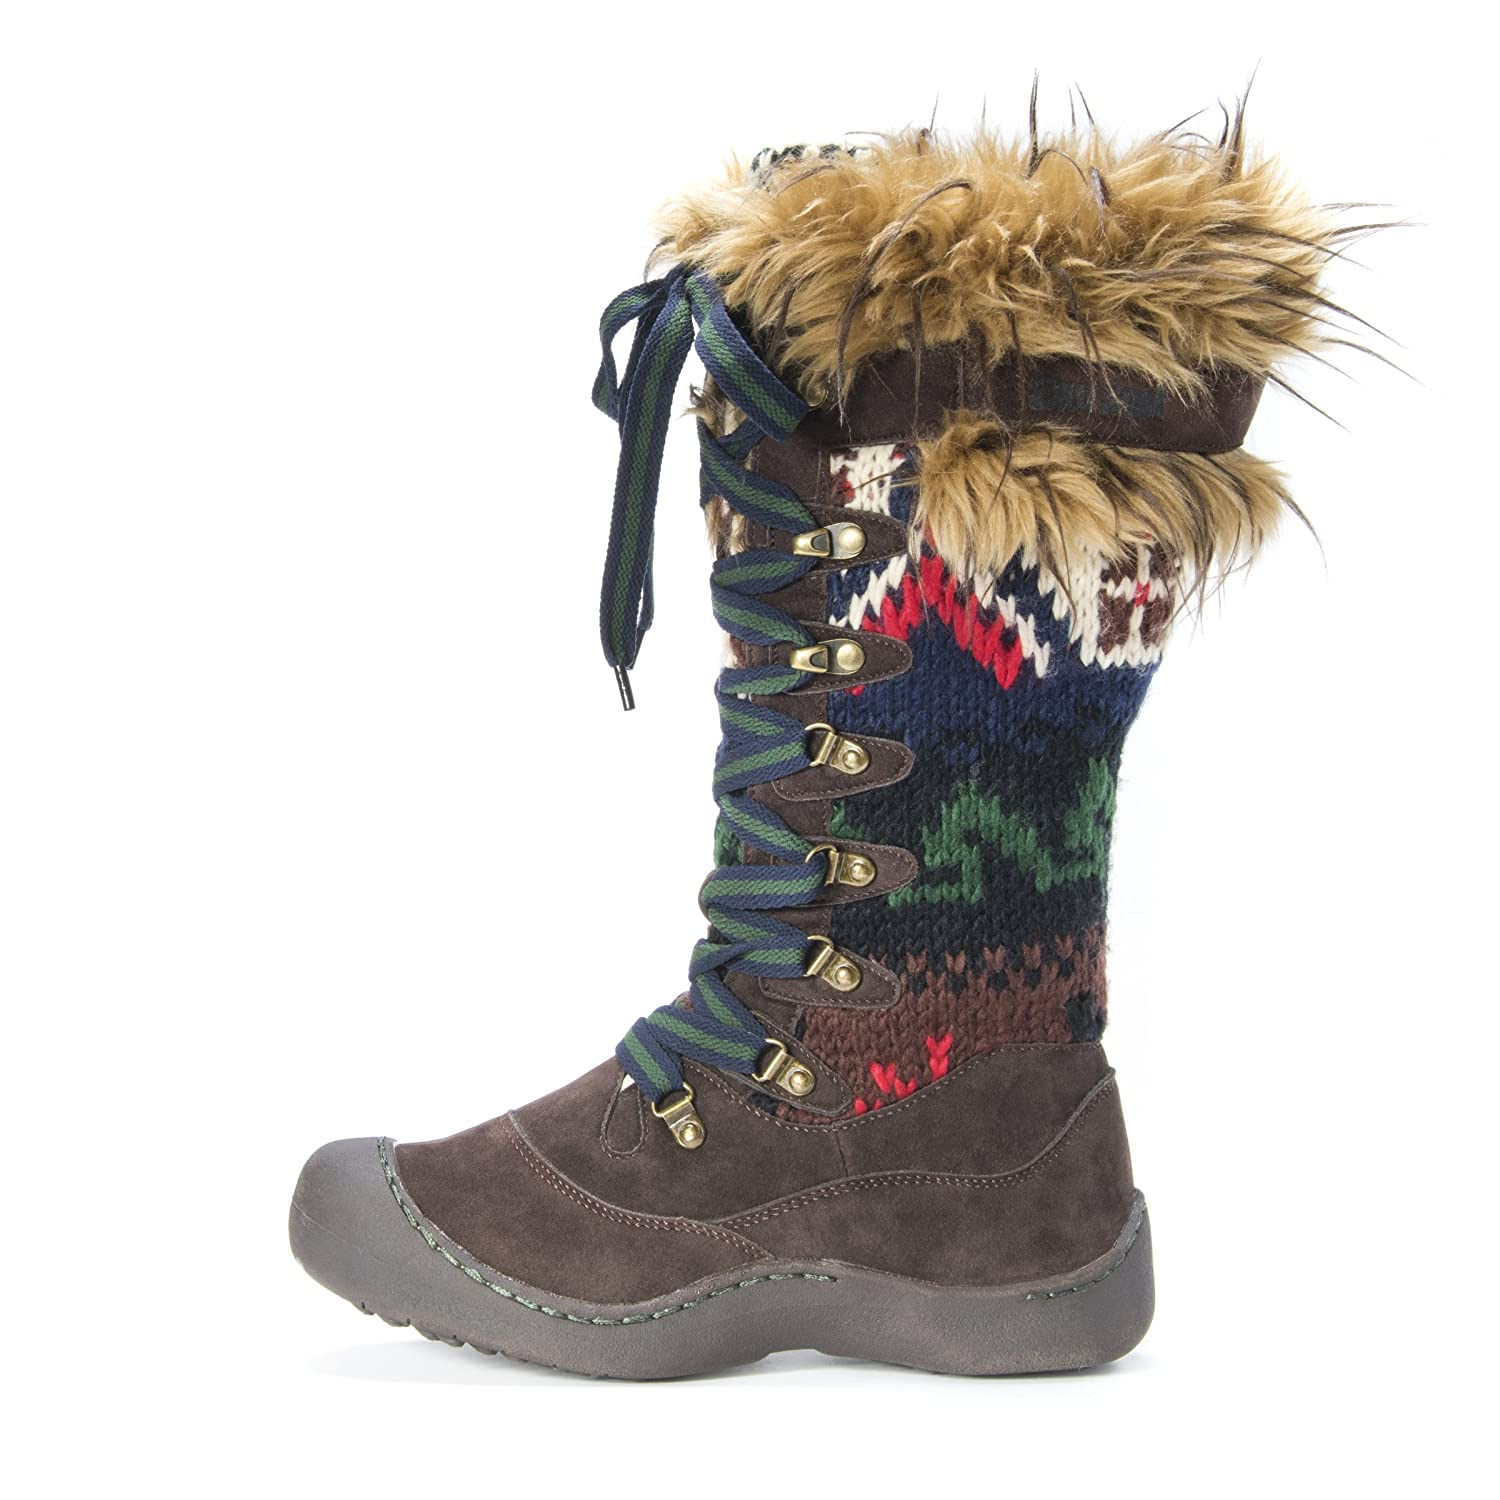 MUK LUKS 6 Women's Gwen Snow Boot B01K8VY3E4 6 LUKS B(M) US|Dark Brown 3deb8b